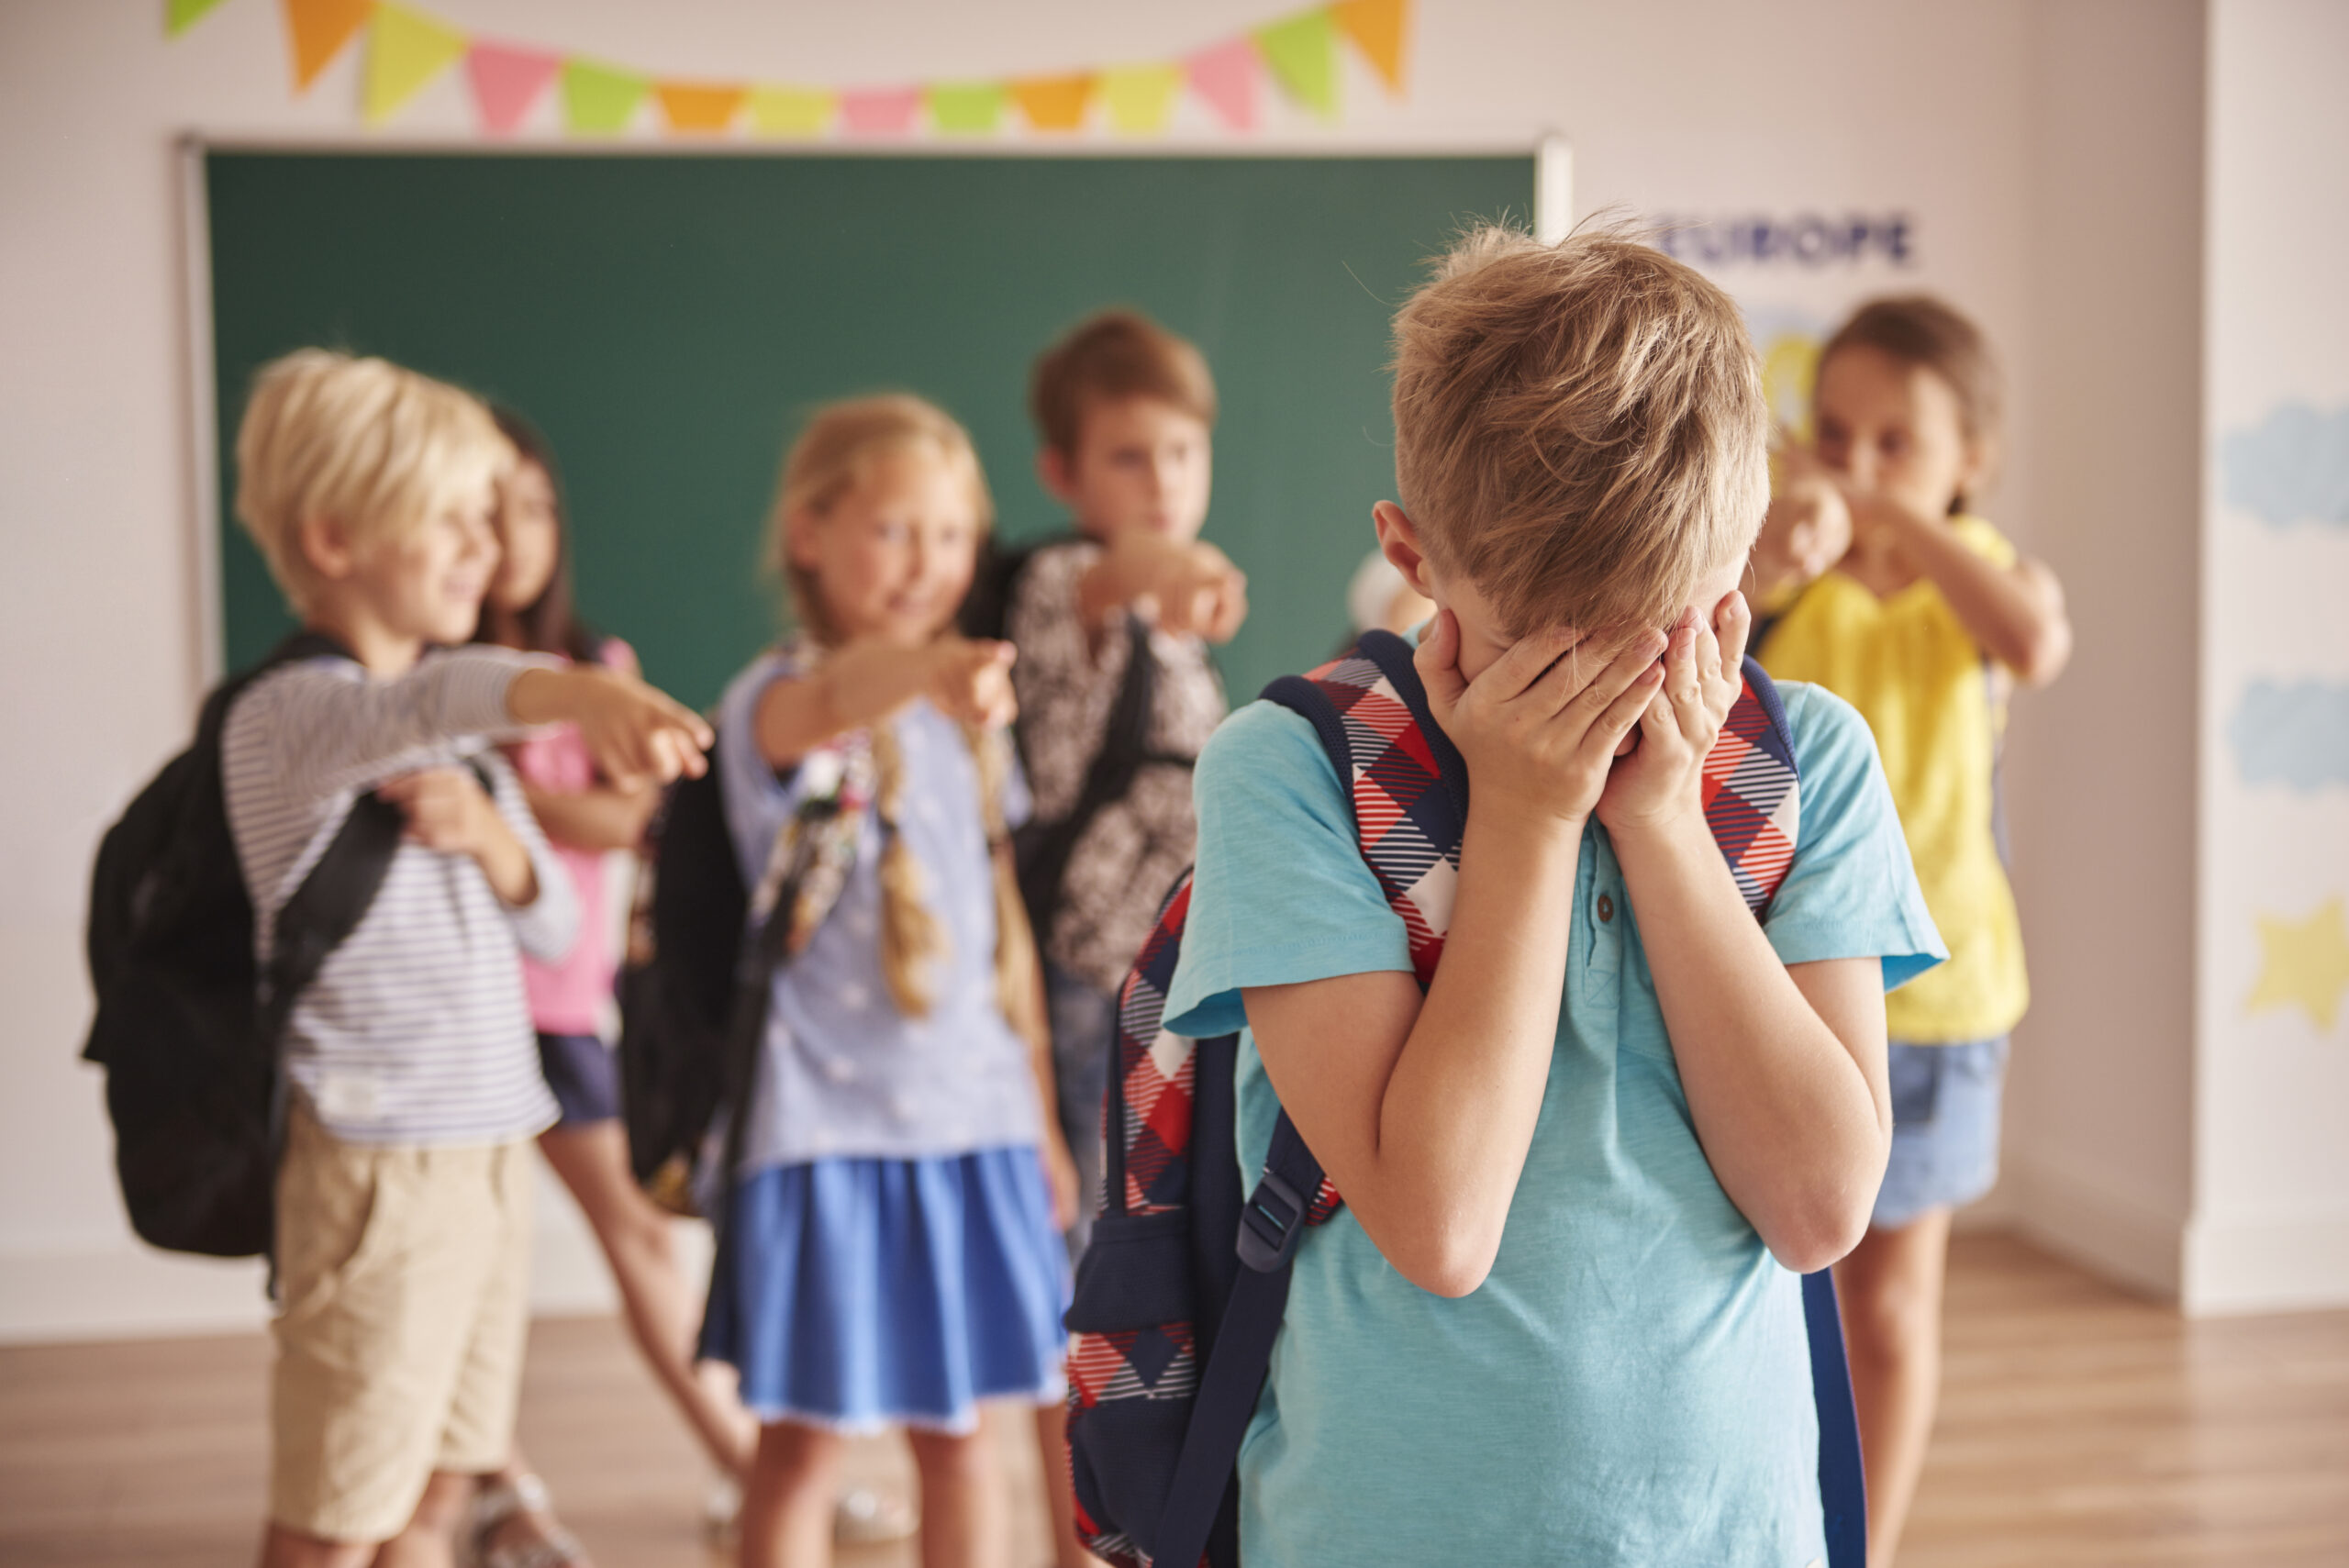 A child being bullied at school. Image credit: iStock